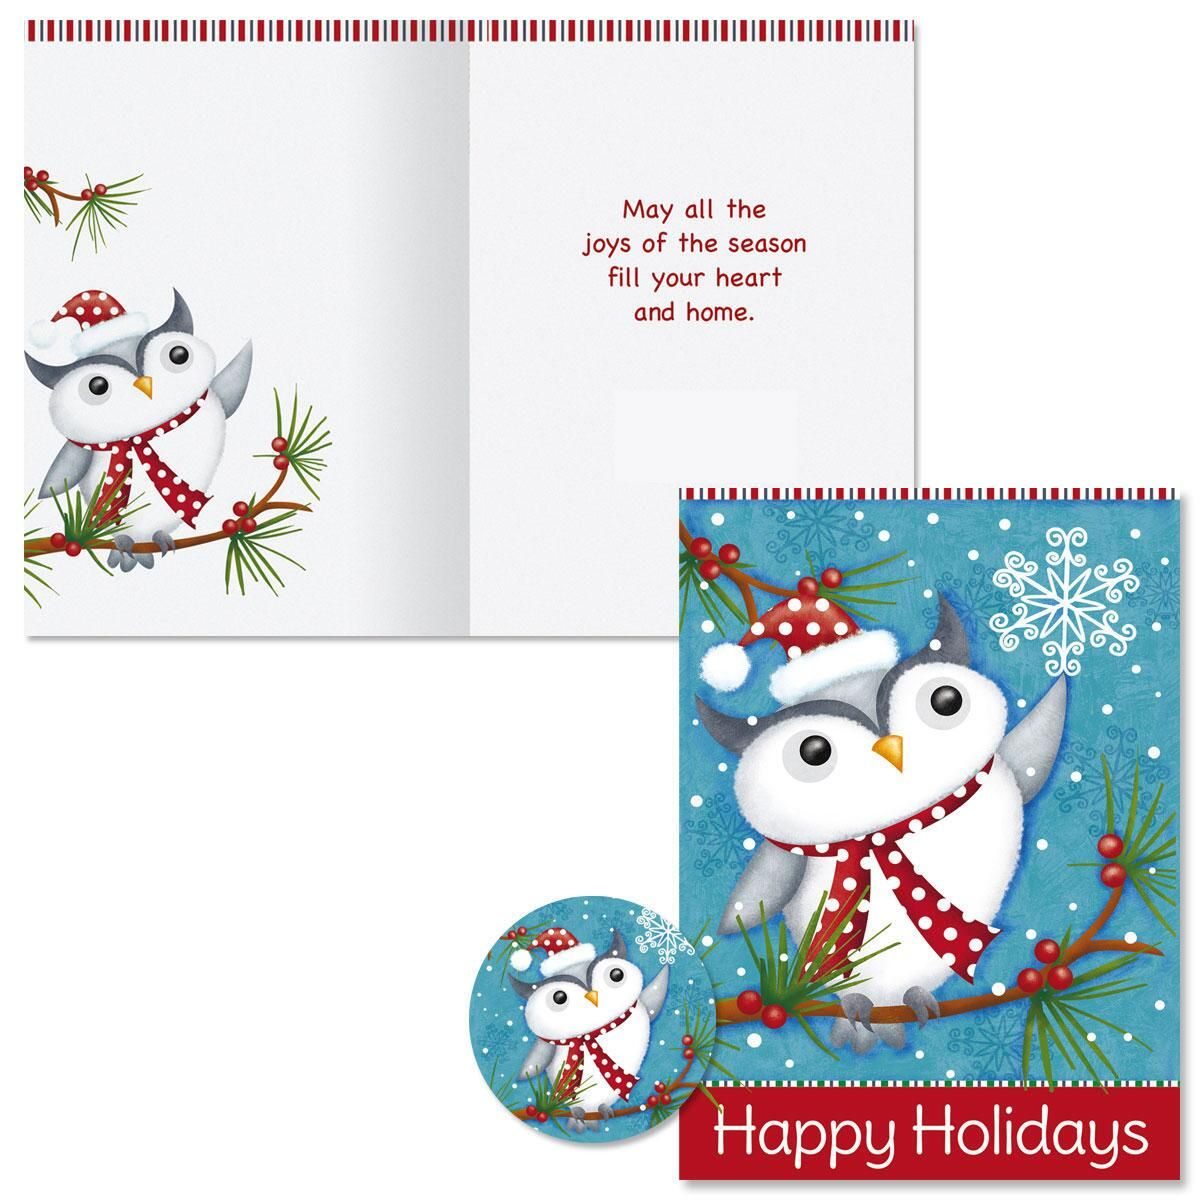 Happy Holiday Owl Christmas Cards | Colorful Images